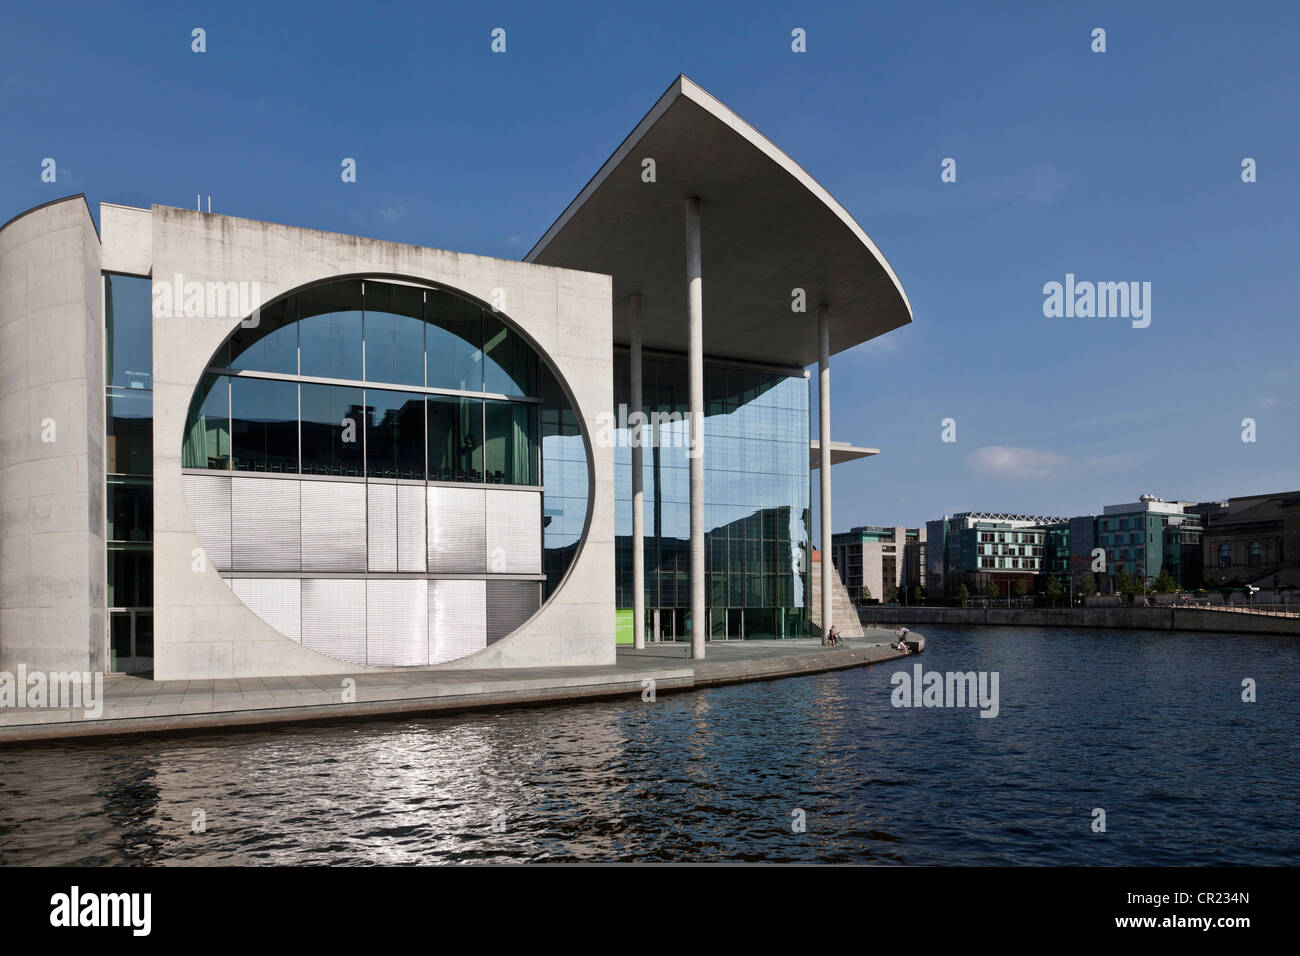 Modern building on urban canal - Stock Image